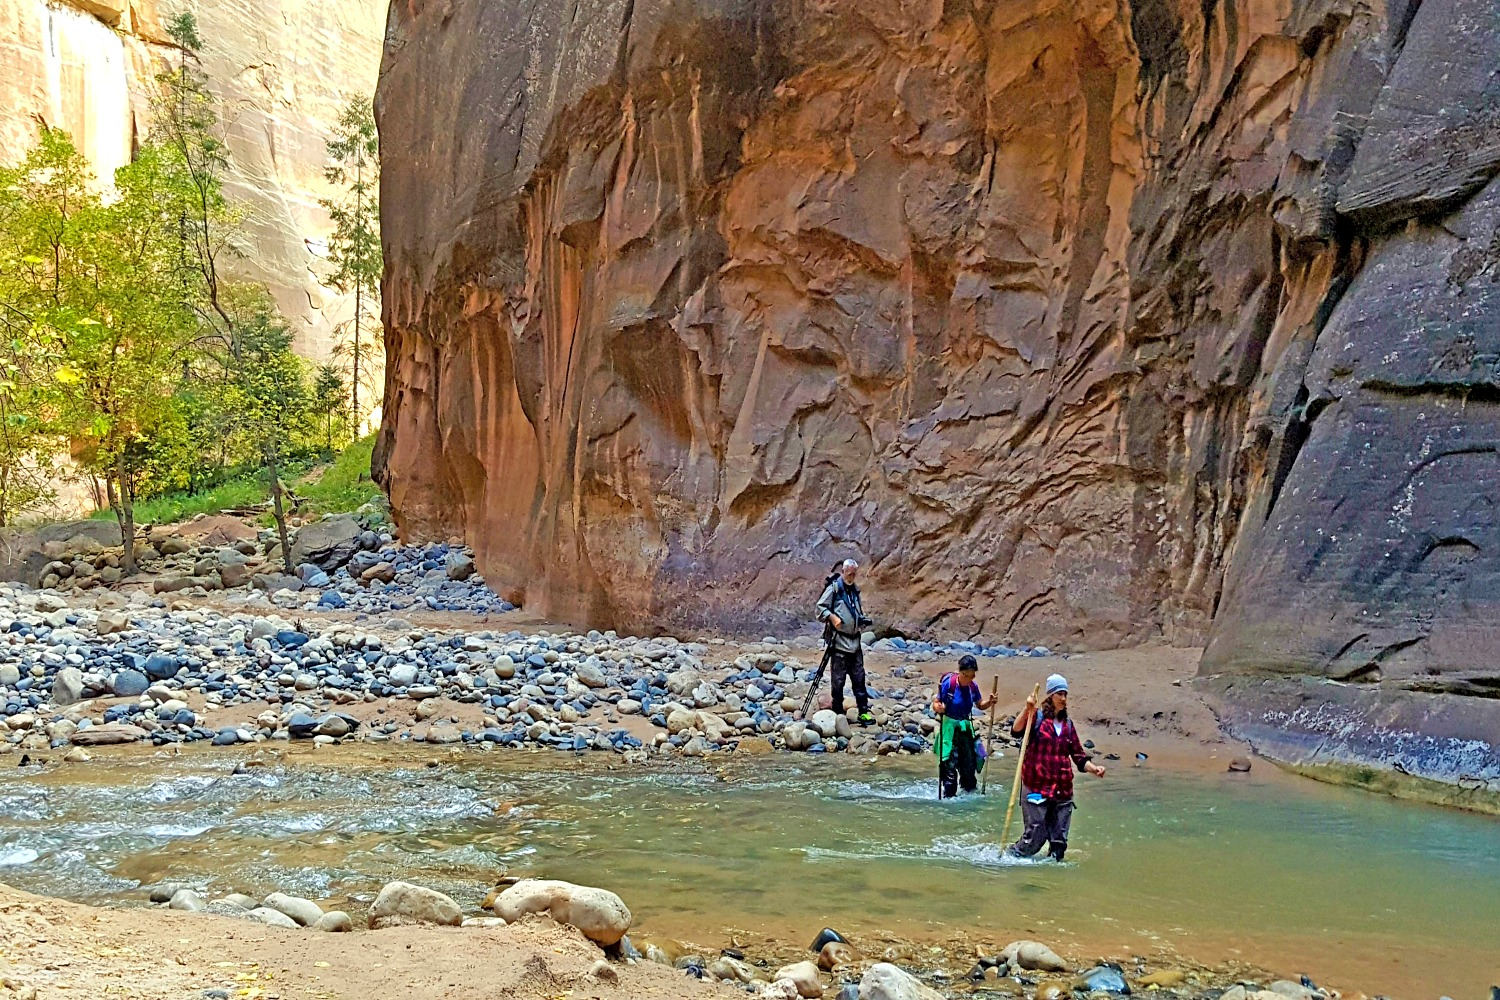 The Narrows in Zion. My friends walking back to the river after a short dry stretch